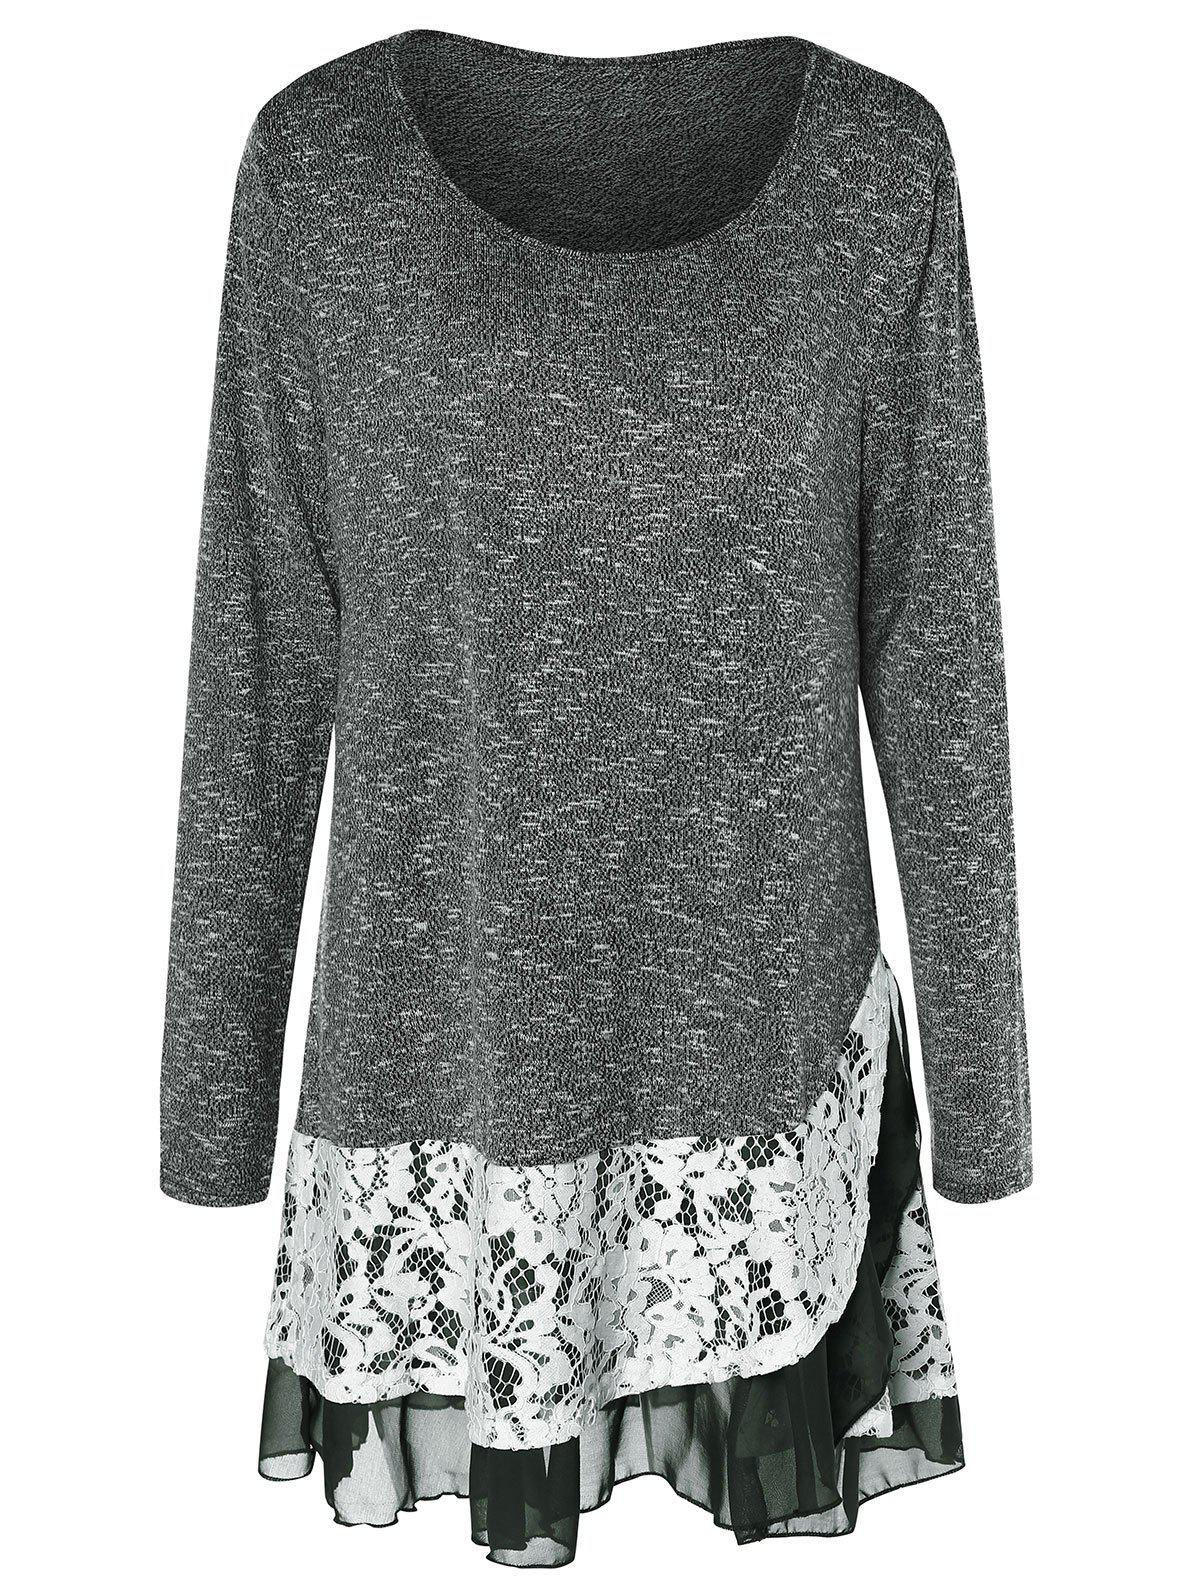 Affordable Plus Size Lace Insert Layered Tunic Knitwear